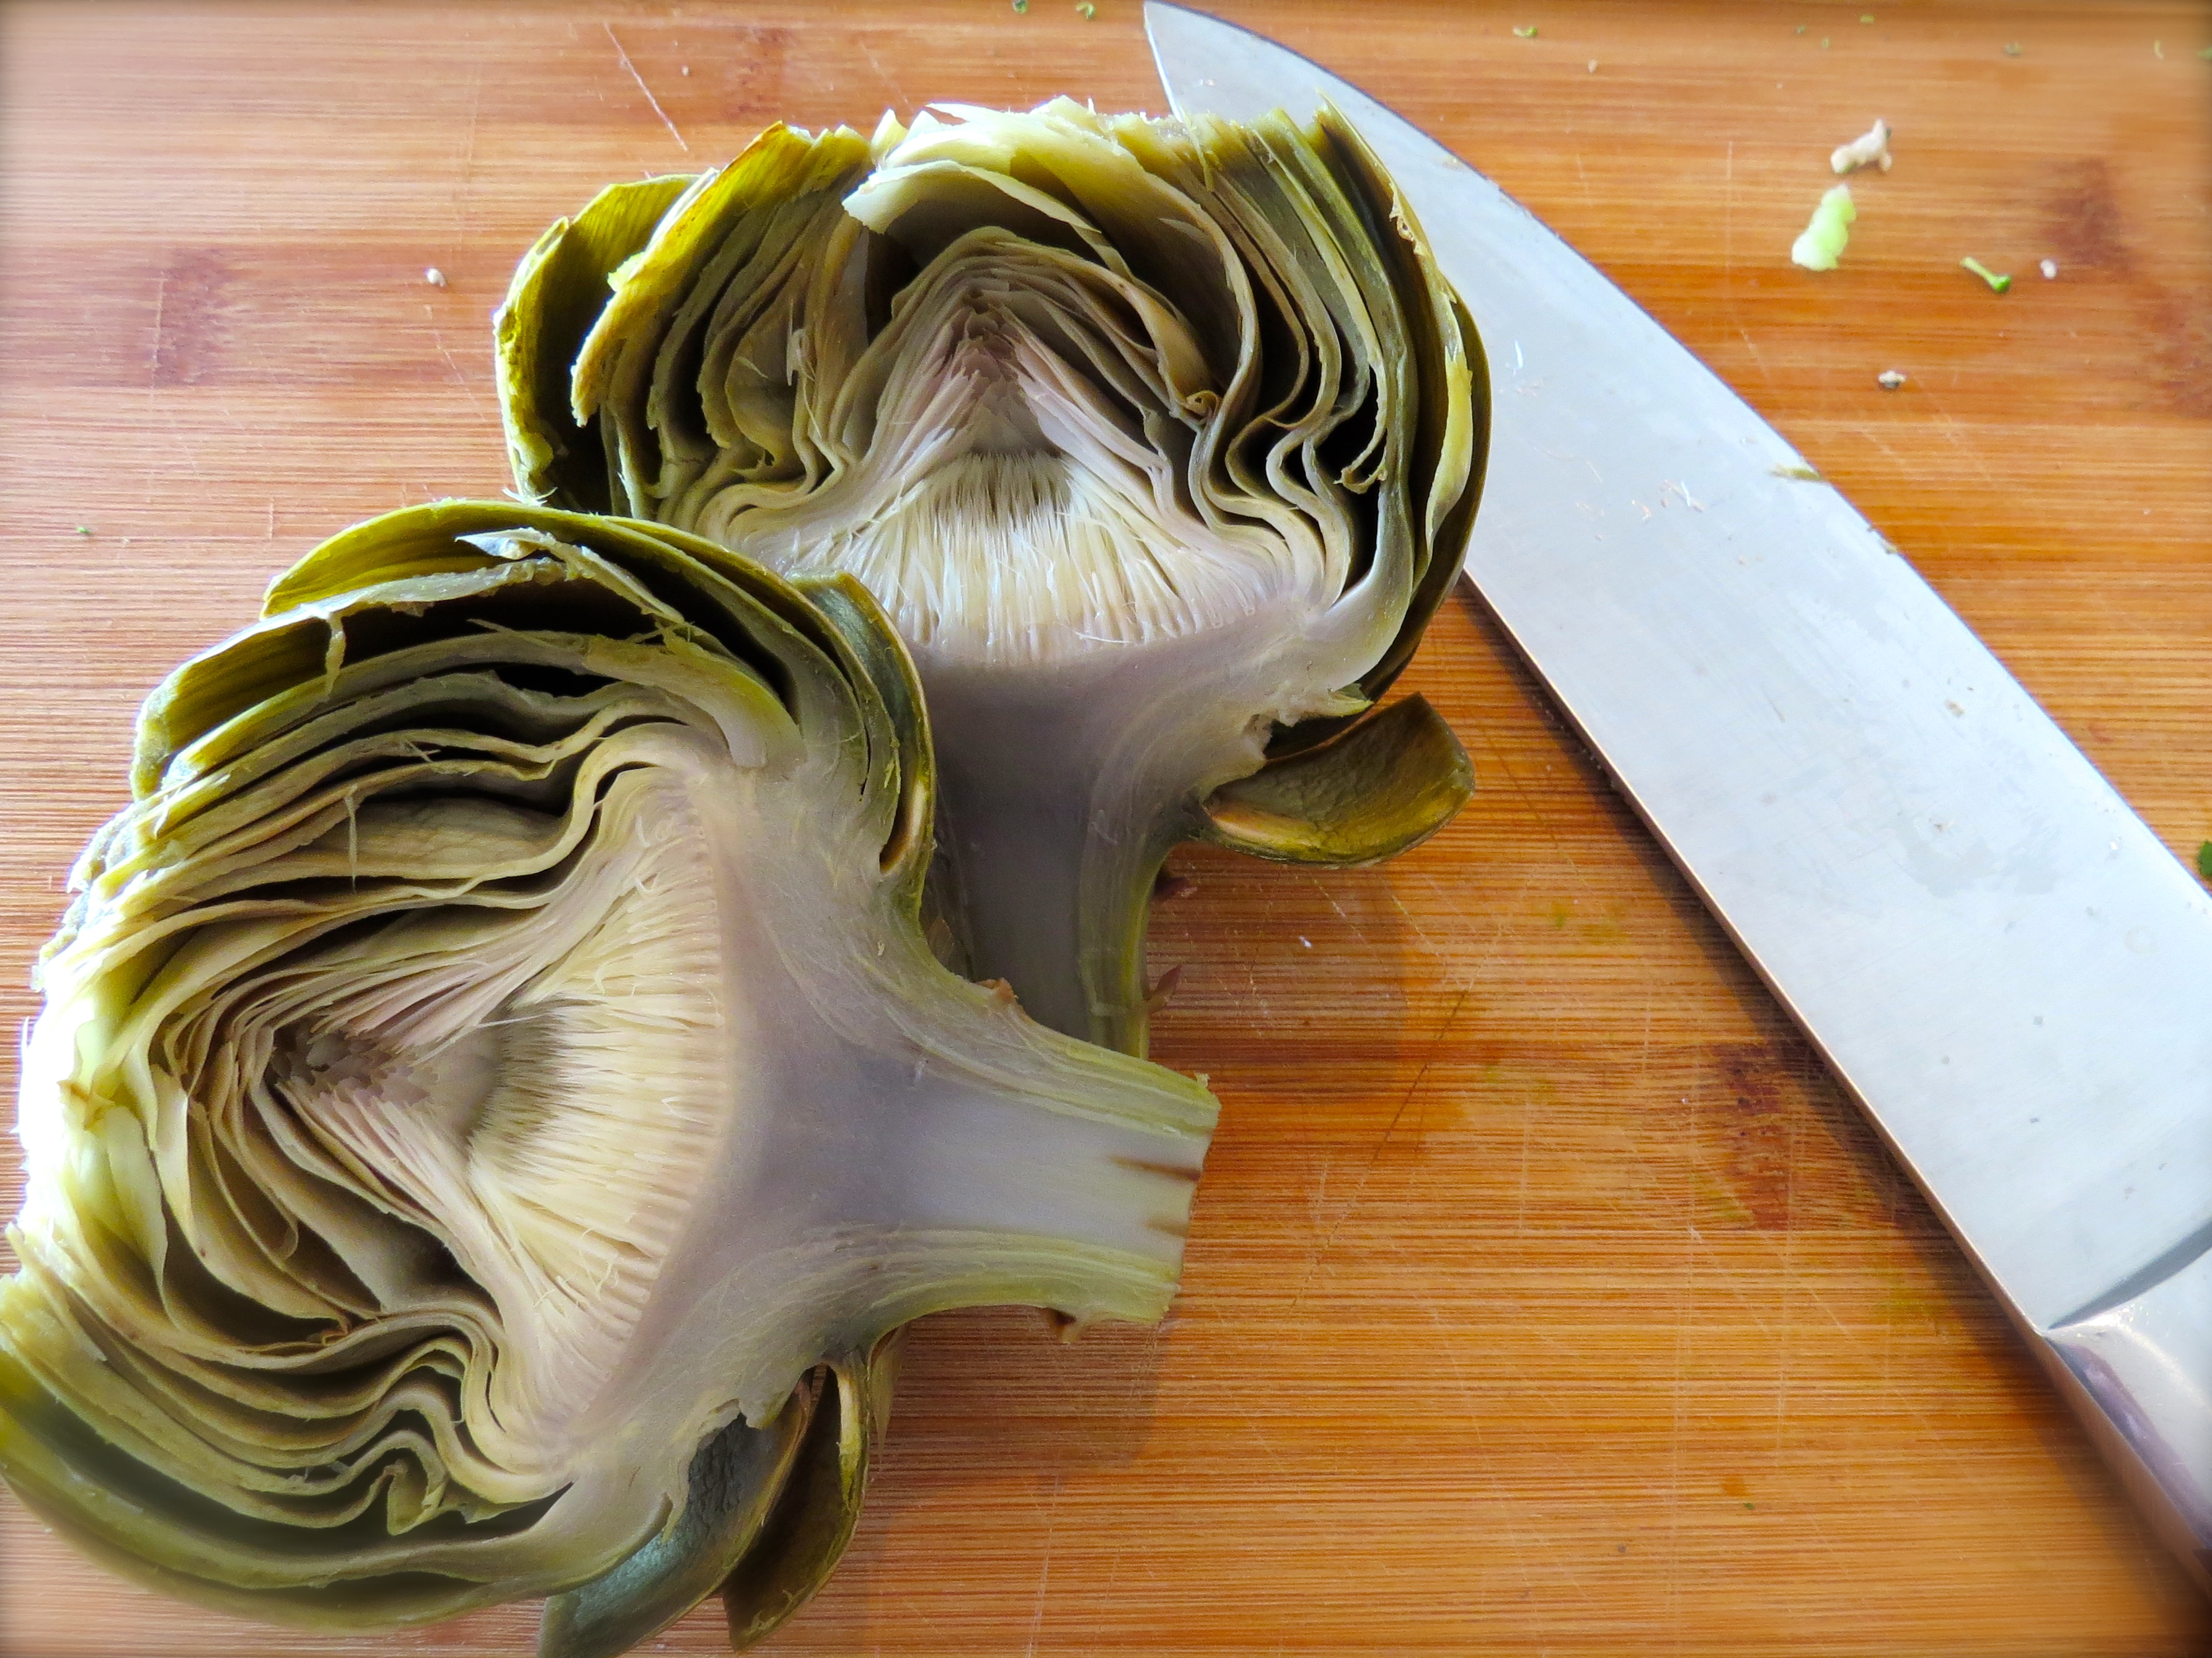 After I sliced the steamed artichoke in two, I needed to scrape out the choke (the fuzzy center.)